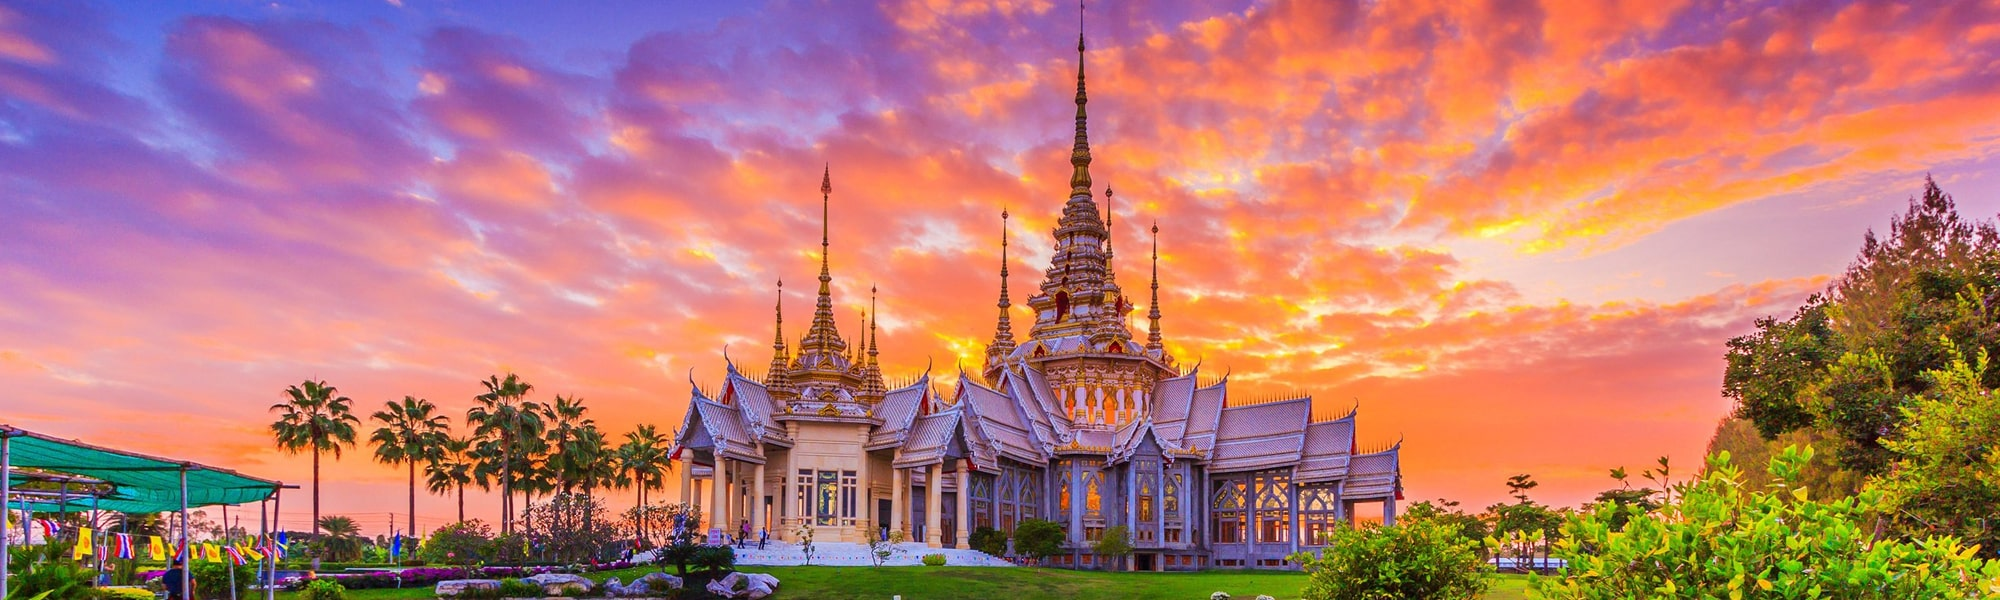 Picturesque Villages in Thailand to Explore For An Offbeat Getaway!